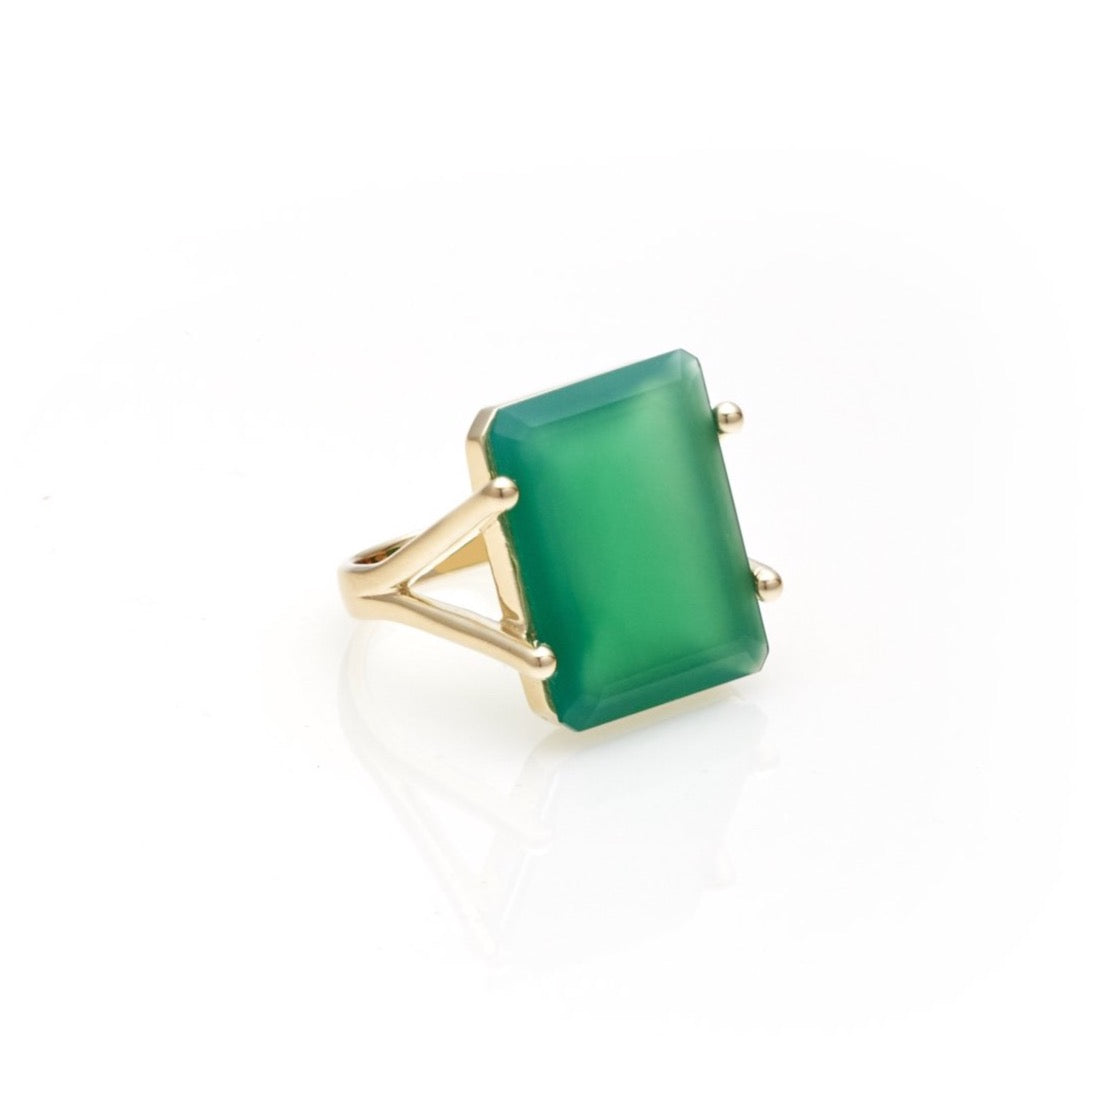 Prima Donna / Green Onyx + Gold / Ring